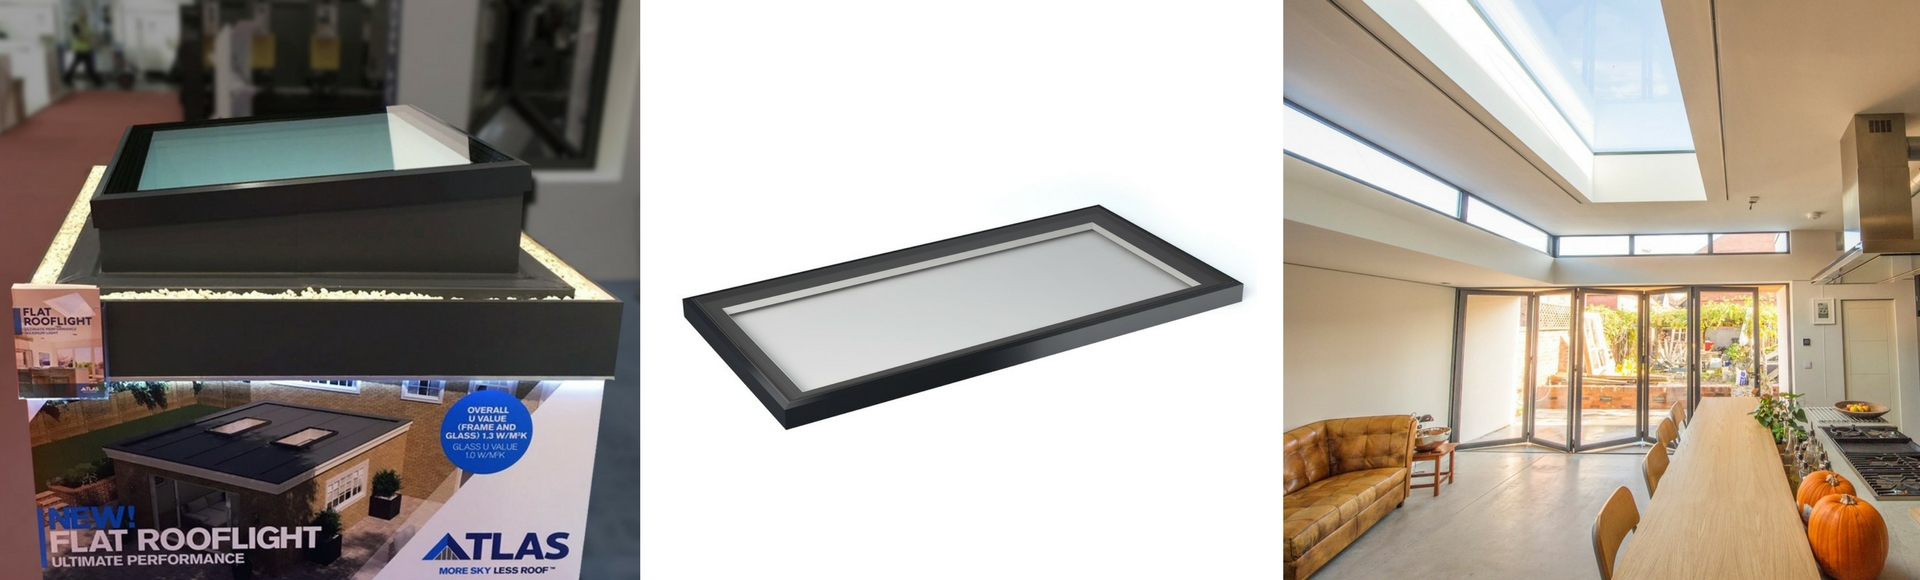 Atlas Flat Rooflight